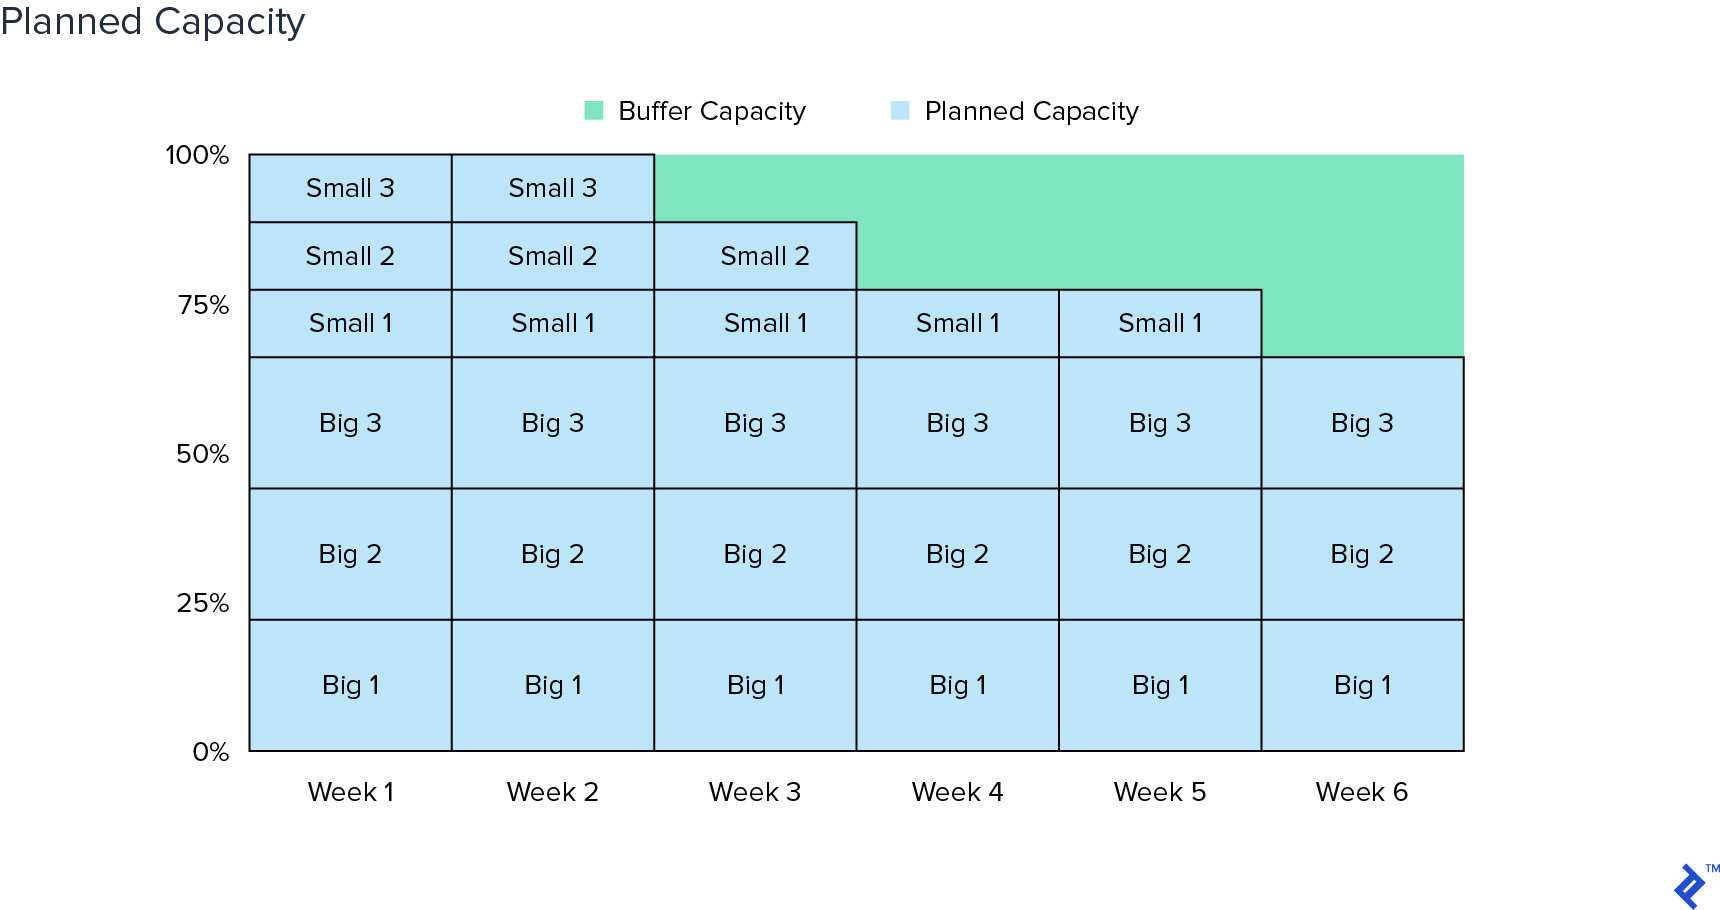 6 week cycle planned and buffer capacity